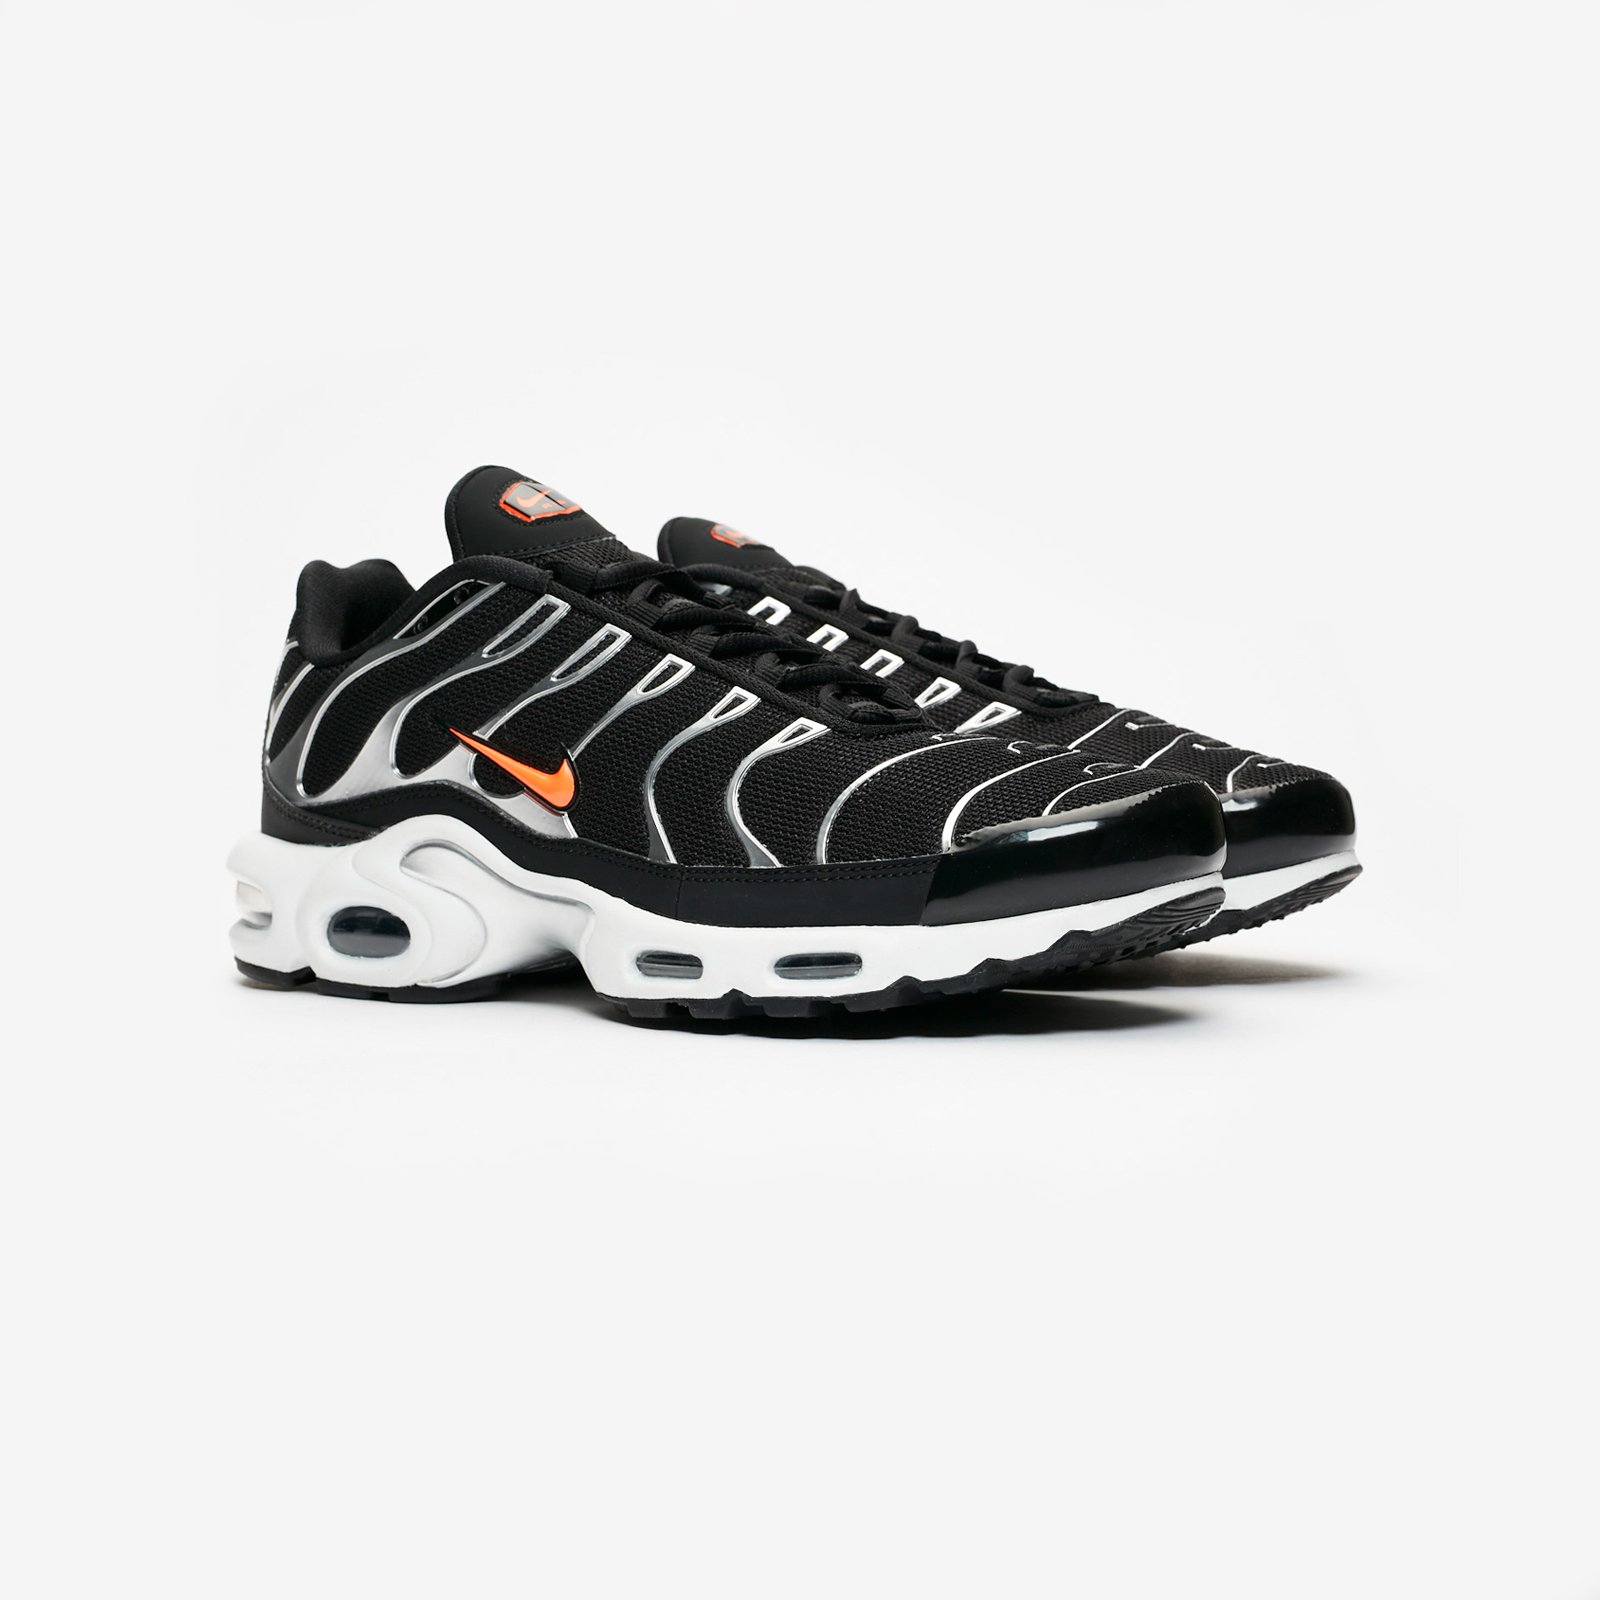 wholesale dealer 7cc25 bb963 Nike Air Max Plus TN SE - Cd1533-001 - Sneakersnstuff ...